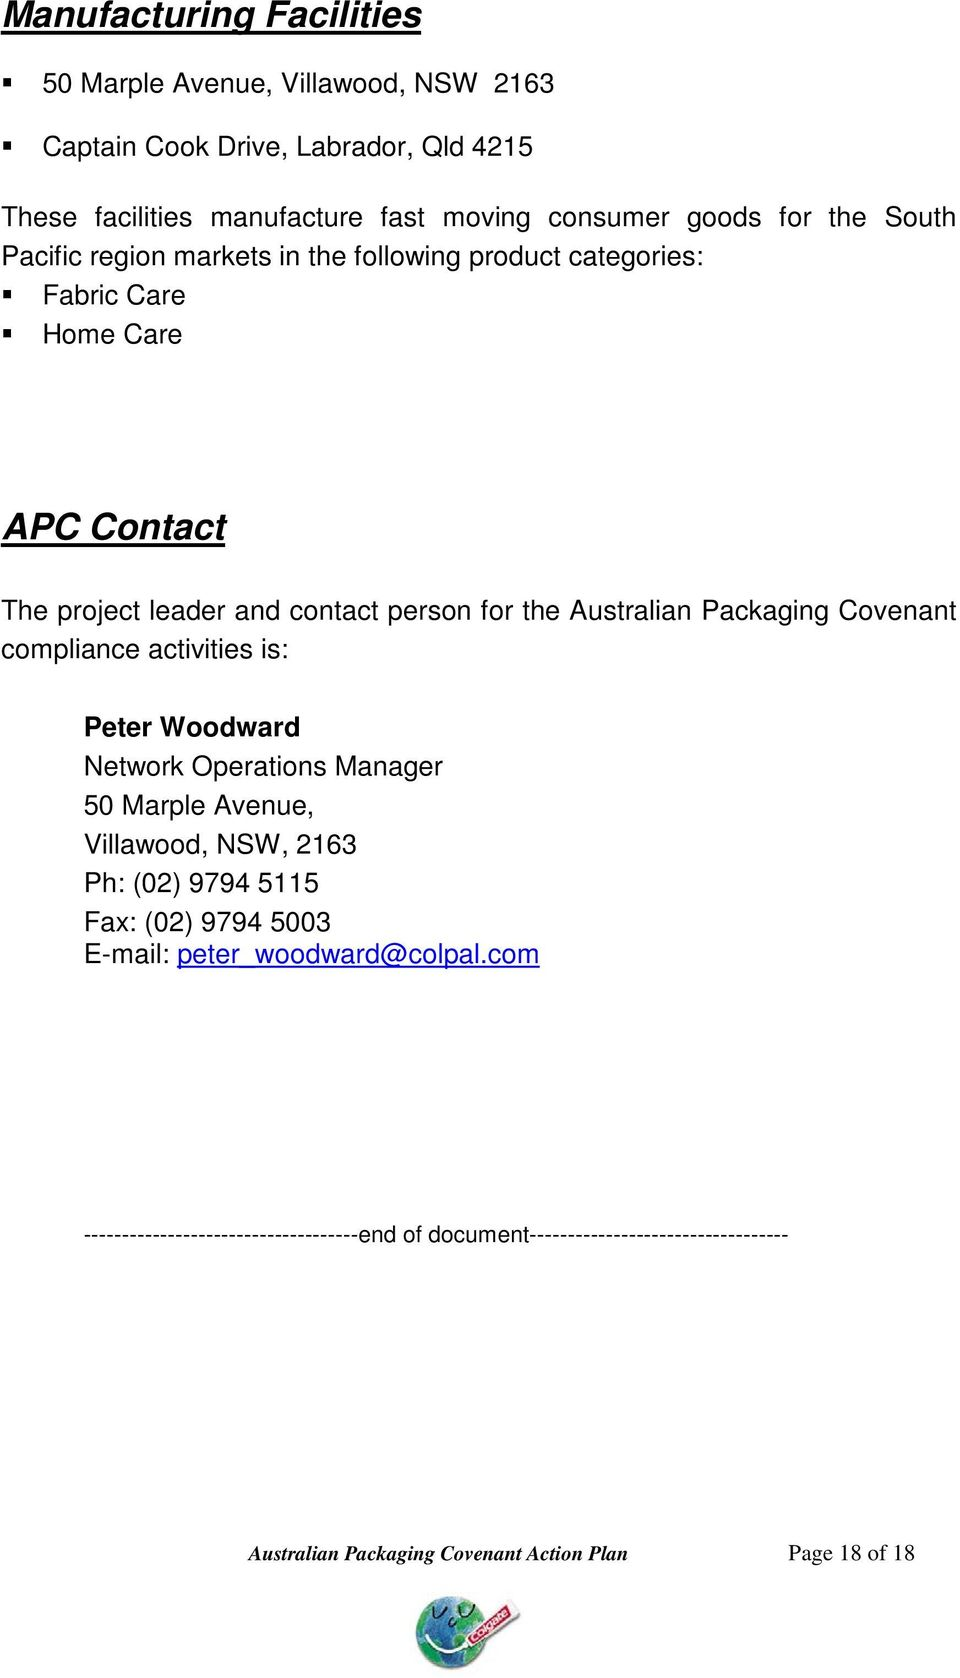 Packaging Covenant compliance activities is: Peter Woodward Network Operations Manager 50 Marple Avenue, Villawood, NSW, 2163 Ph: (02) 9794 5115 Fax: (02) 9794 5003